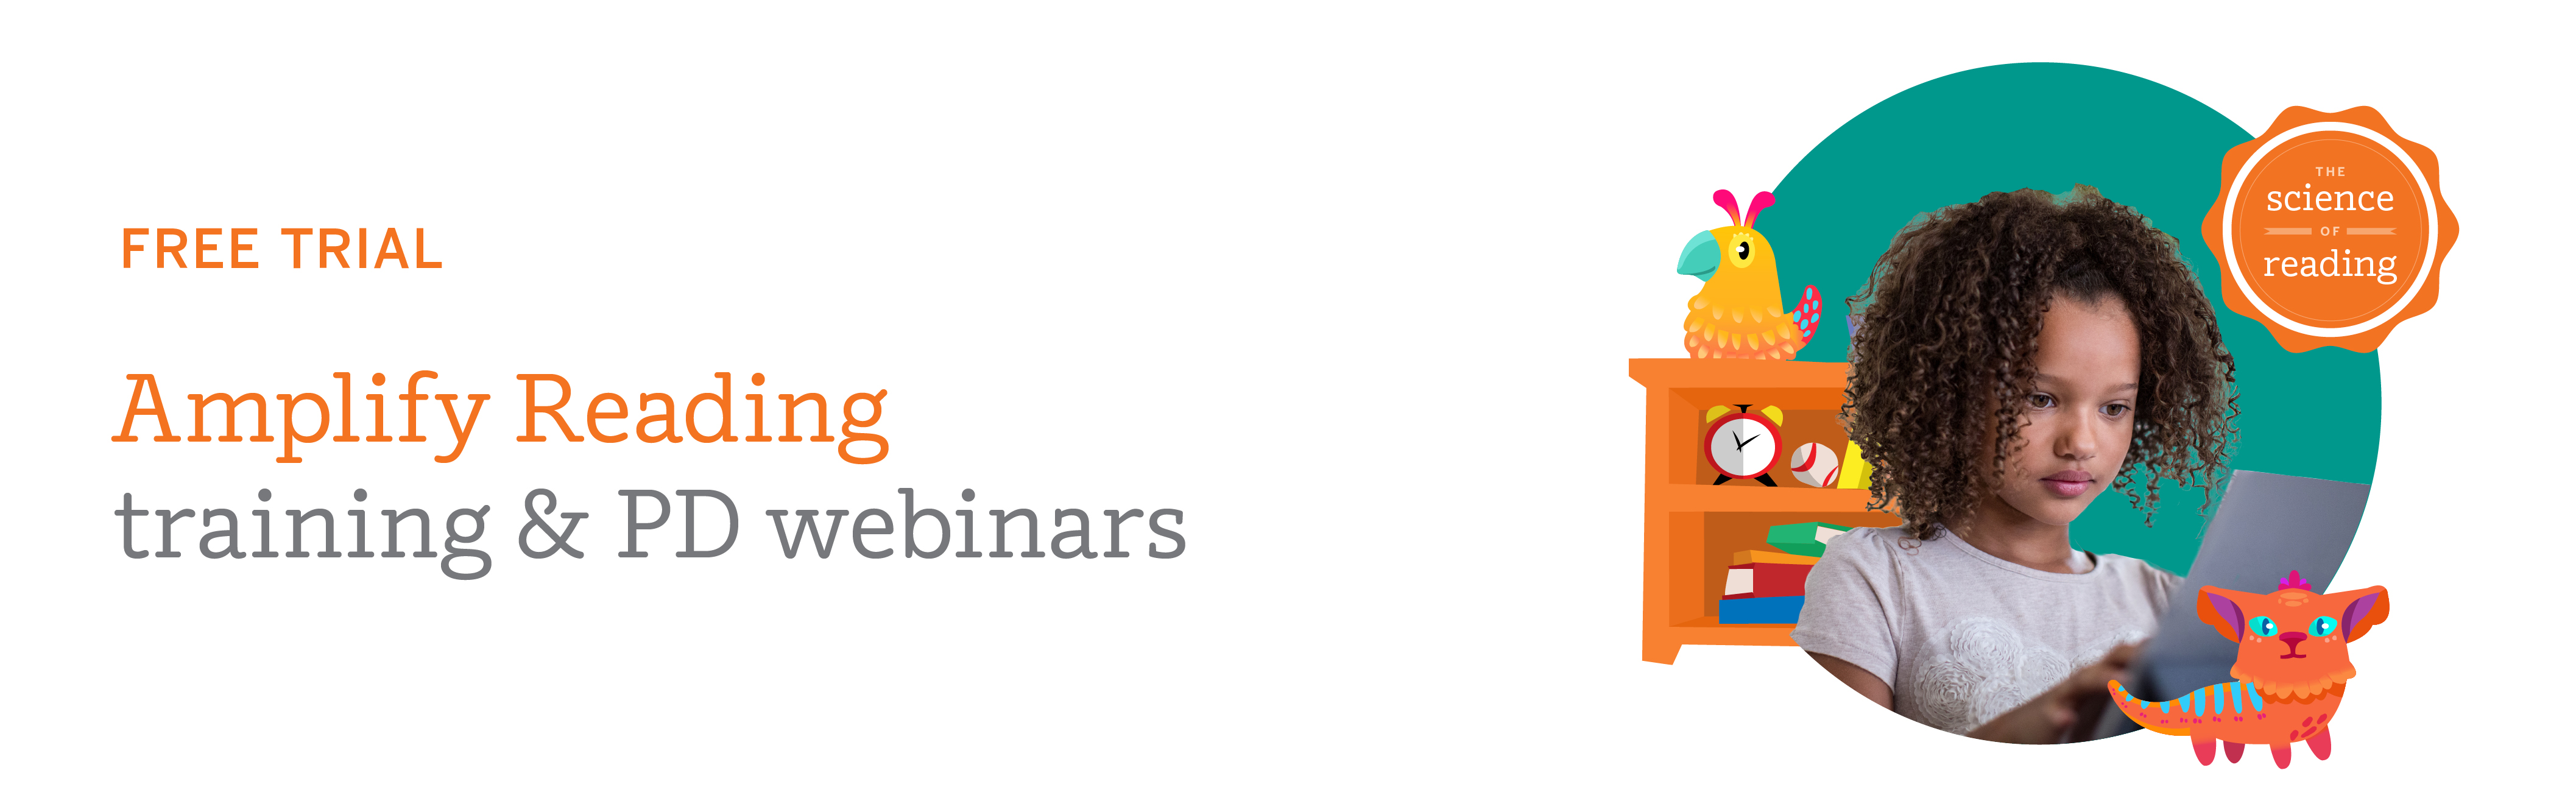 [Free trial] Amplify Reading training and PD webinars